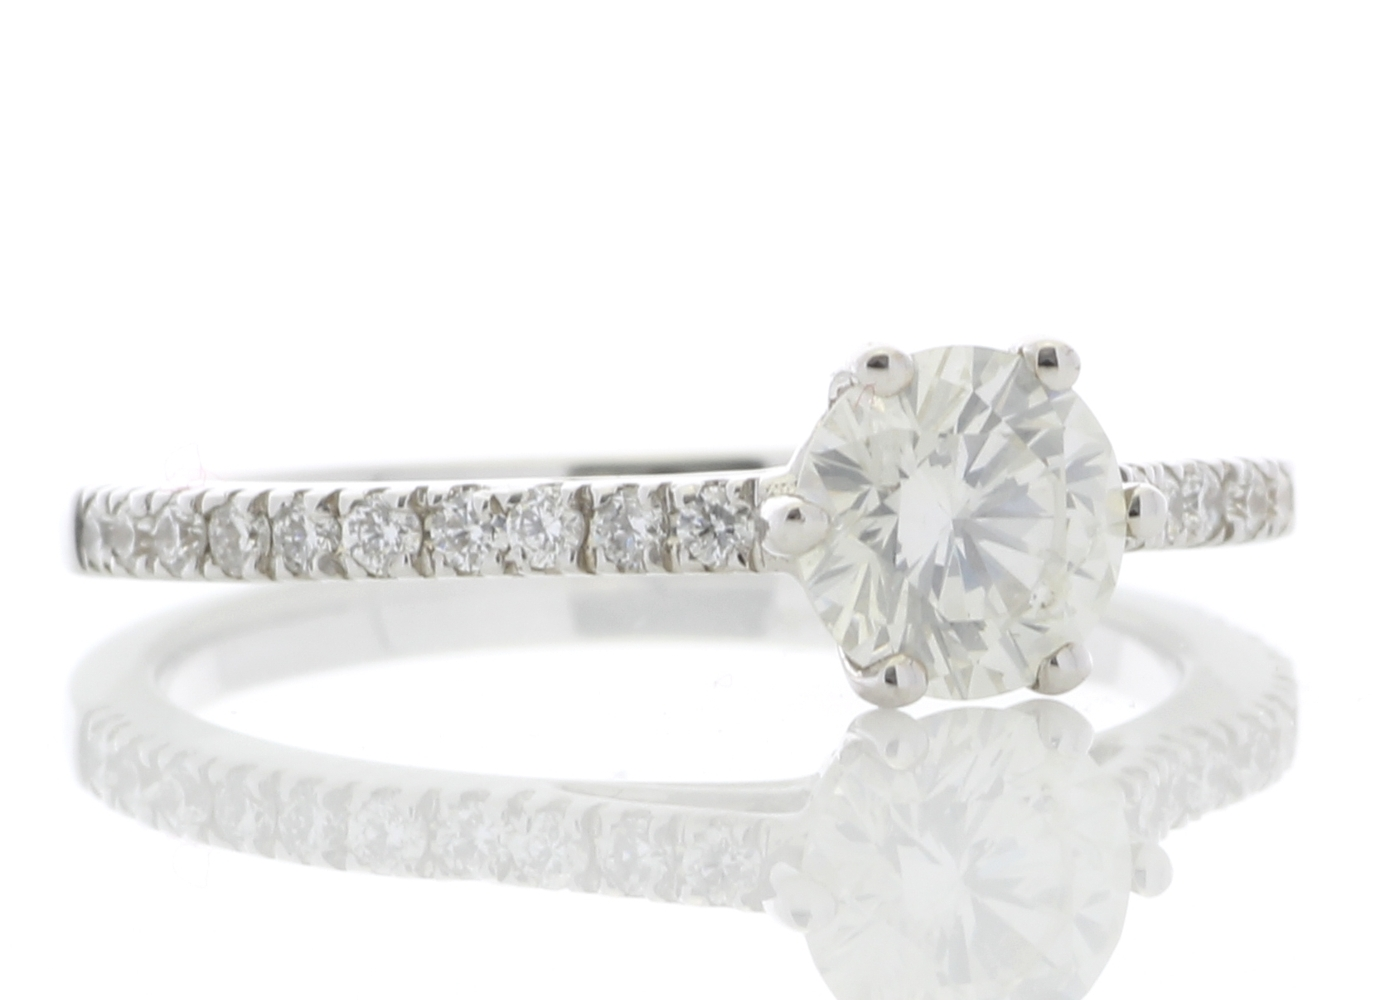 18ct White Gold Solitaire Diamond ring With Stone Set Shoulders 0.90 Carats - Image 4 of 5